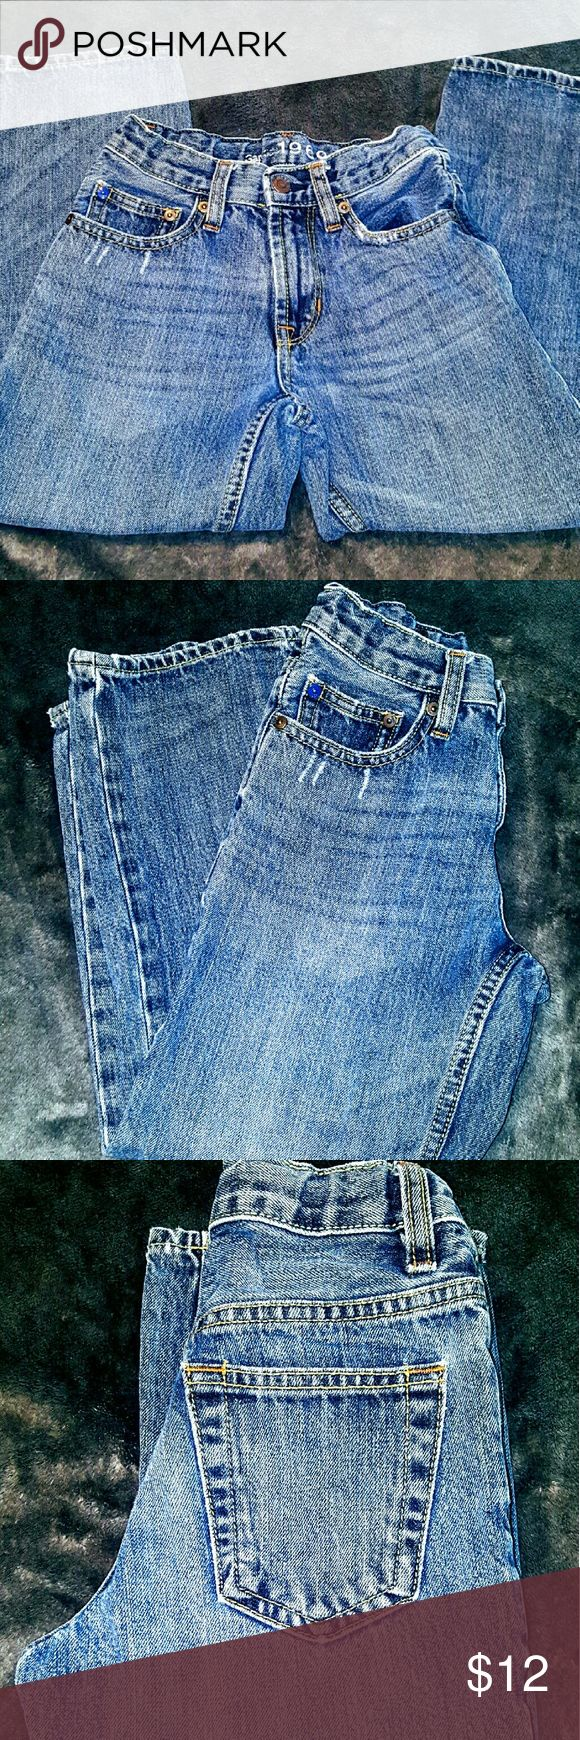 Boys 1969 Gap Kids Distressed Loose Fit Jeans Boys 1969 Gap Kids Distressed Loose Fit Jeans. Size 6. In excellent condition. GAP Bottoms Jeans